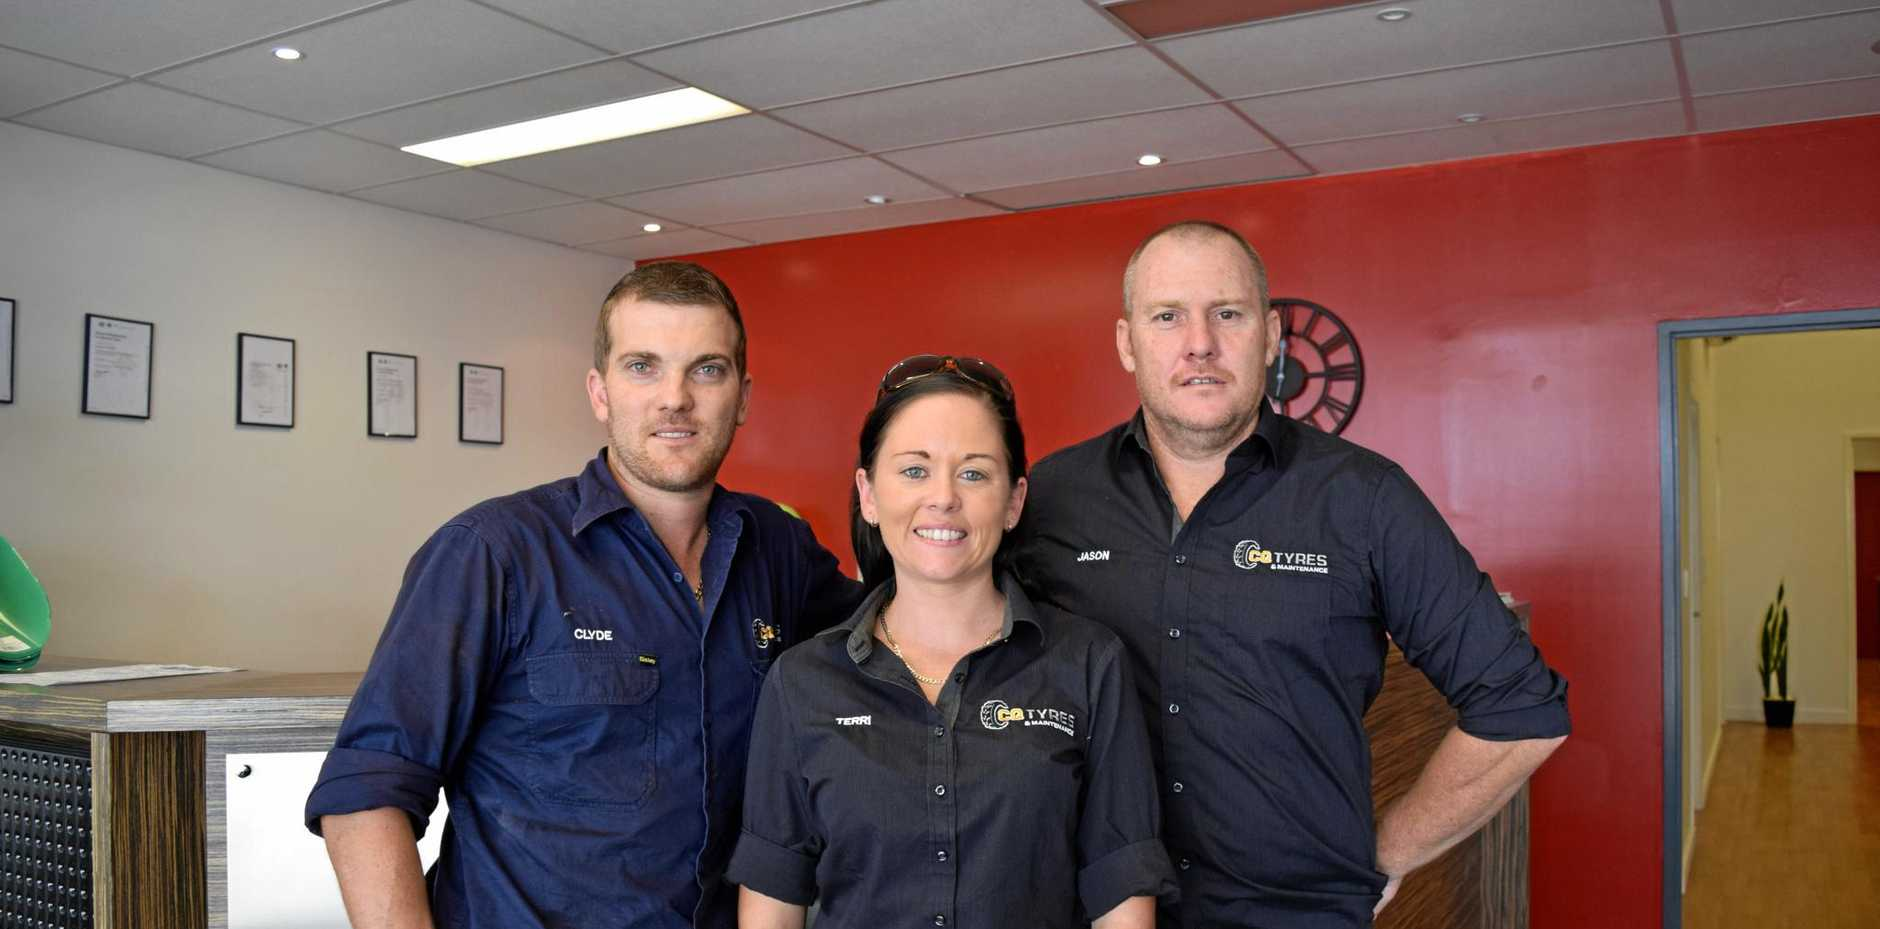 BUSINESS BOOMING: Mackay's own power trio Jason Steele, Terri Shepheard and Clyde Shepheard have three completely different businesses open from their office in Paget.